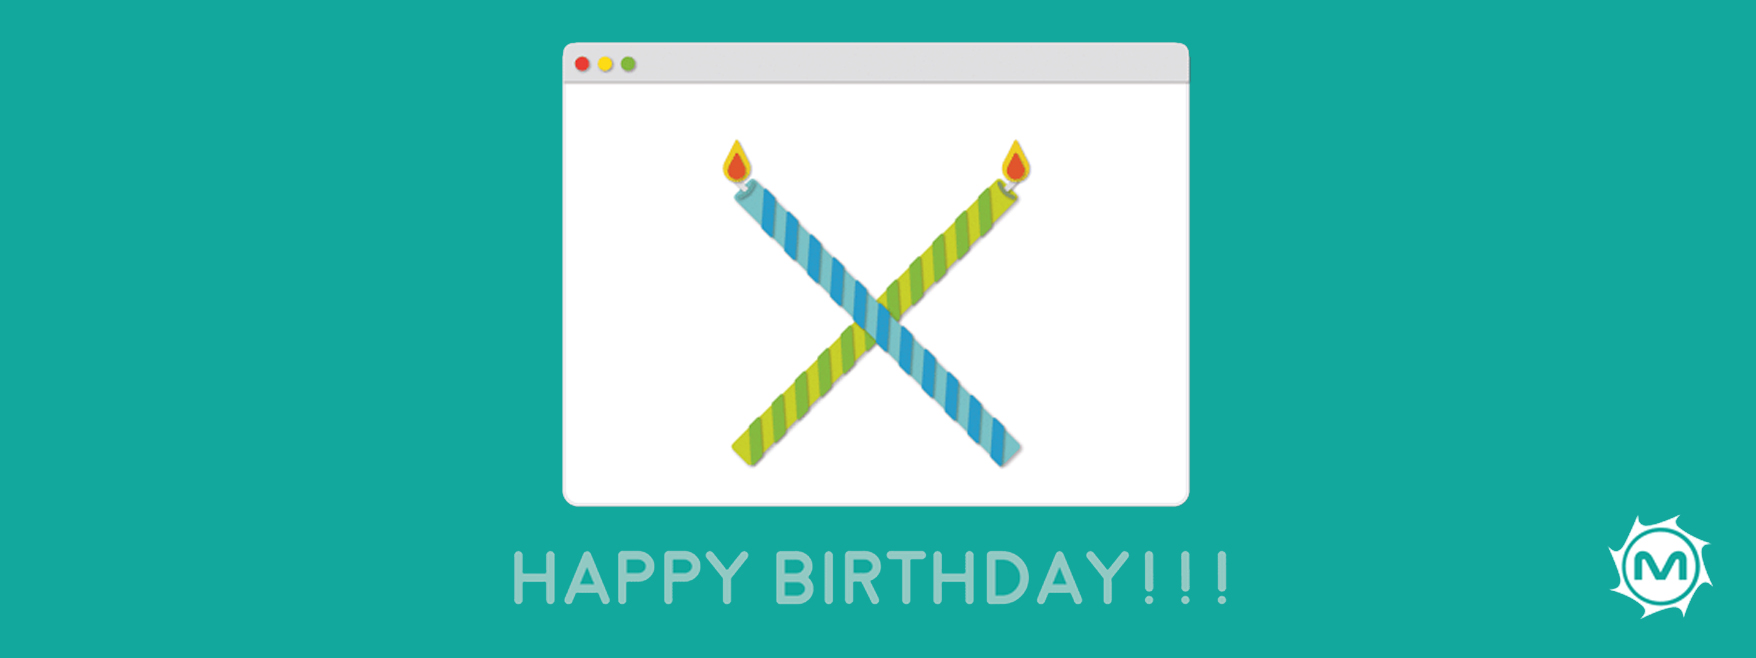 OS X celebrates 16 years of revolutionizing UI and UX